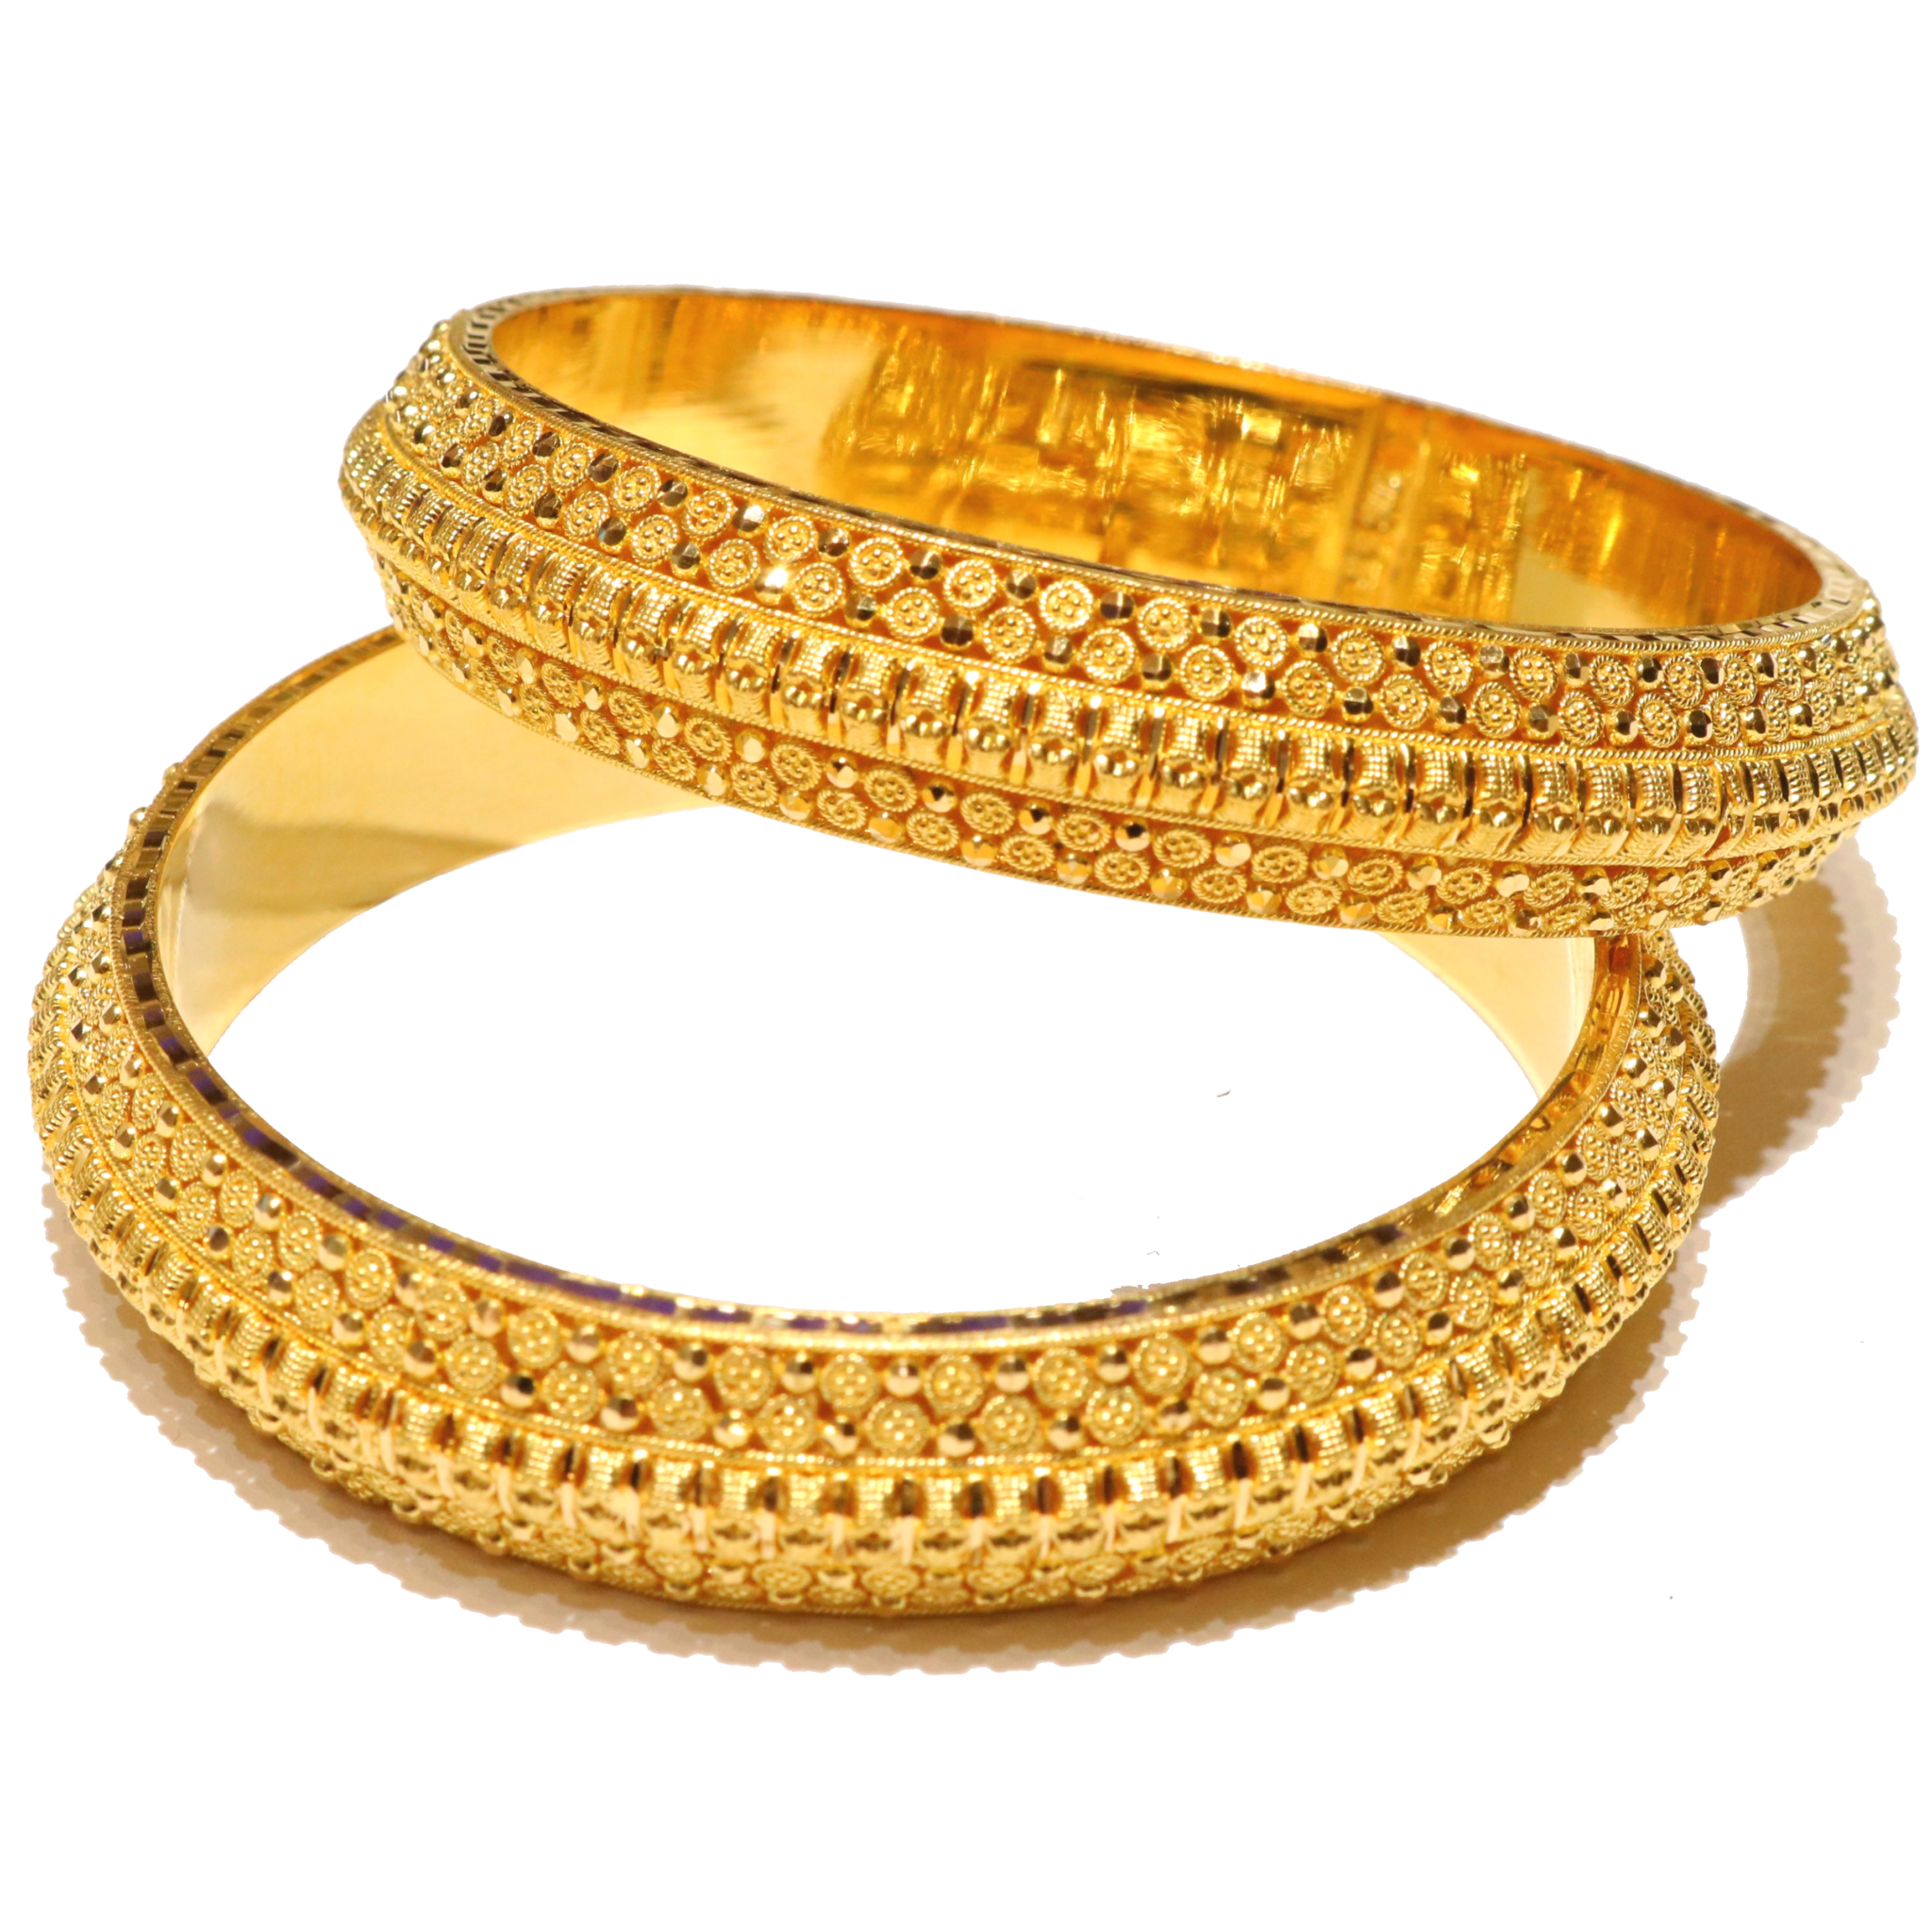 24 carat gold jewellery online shopping india